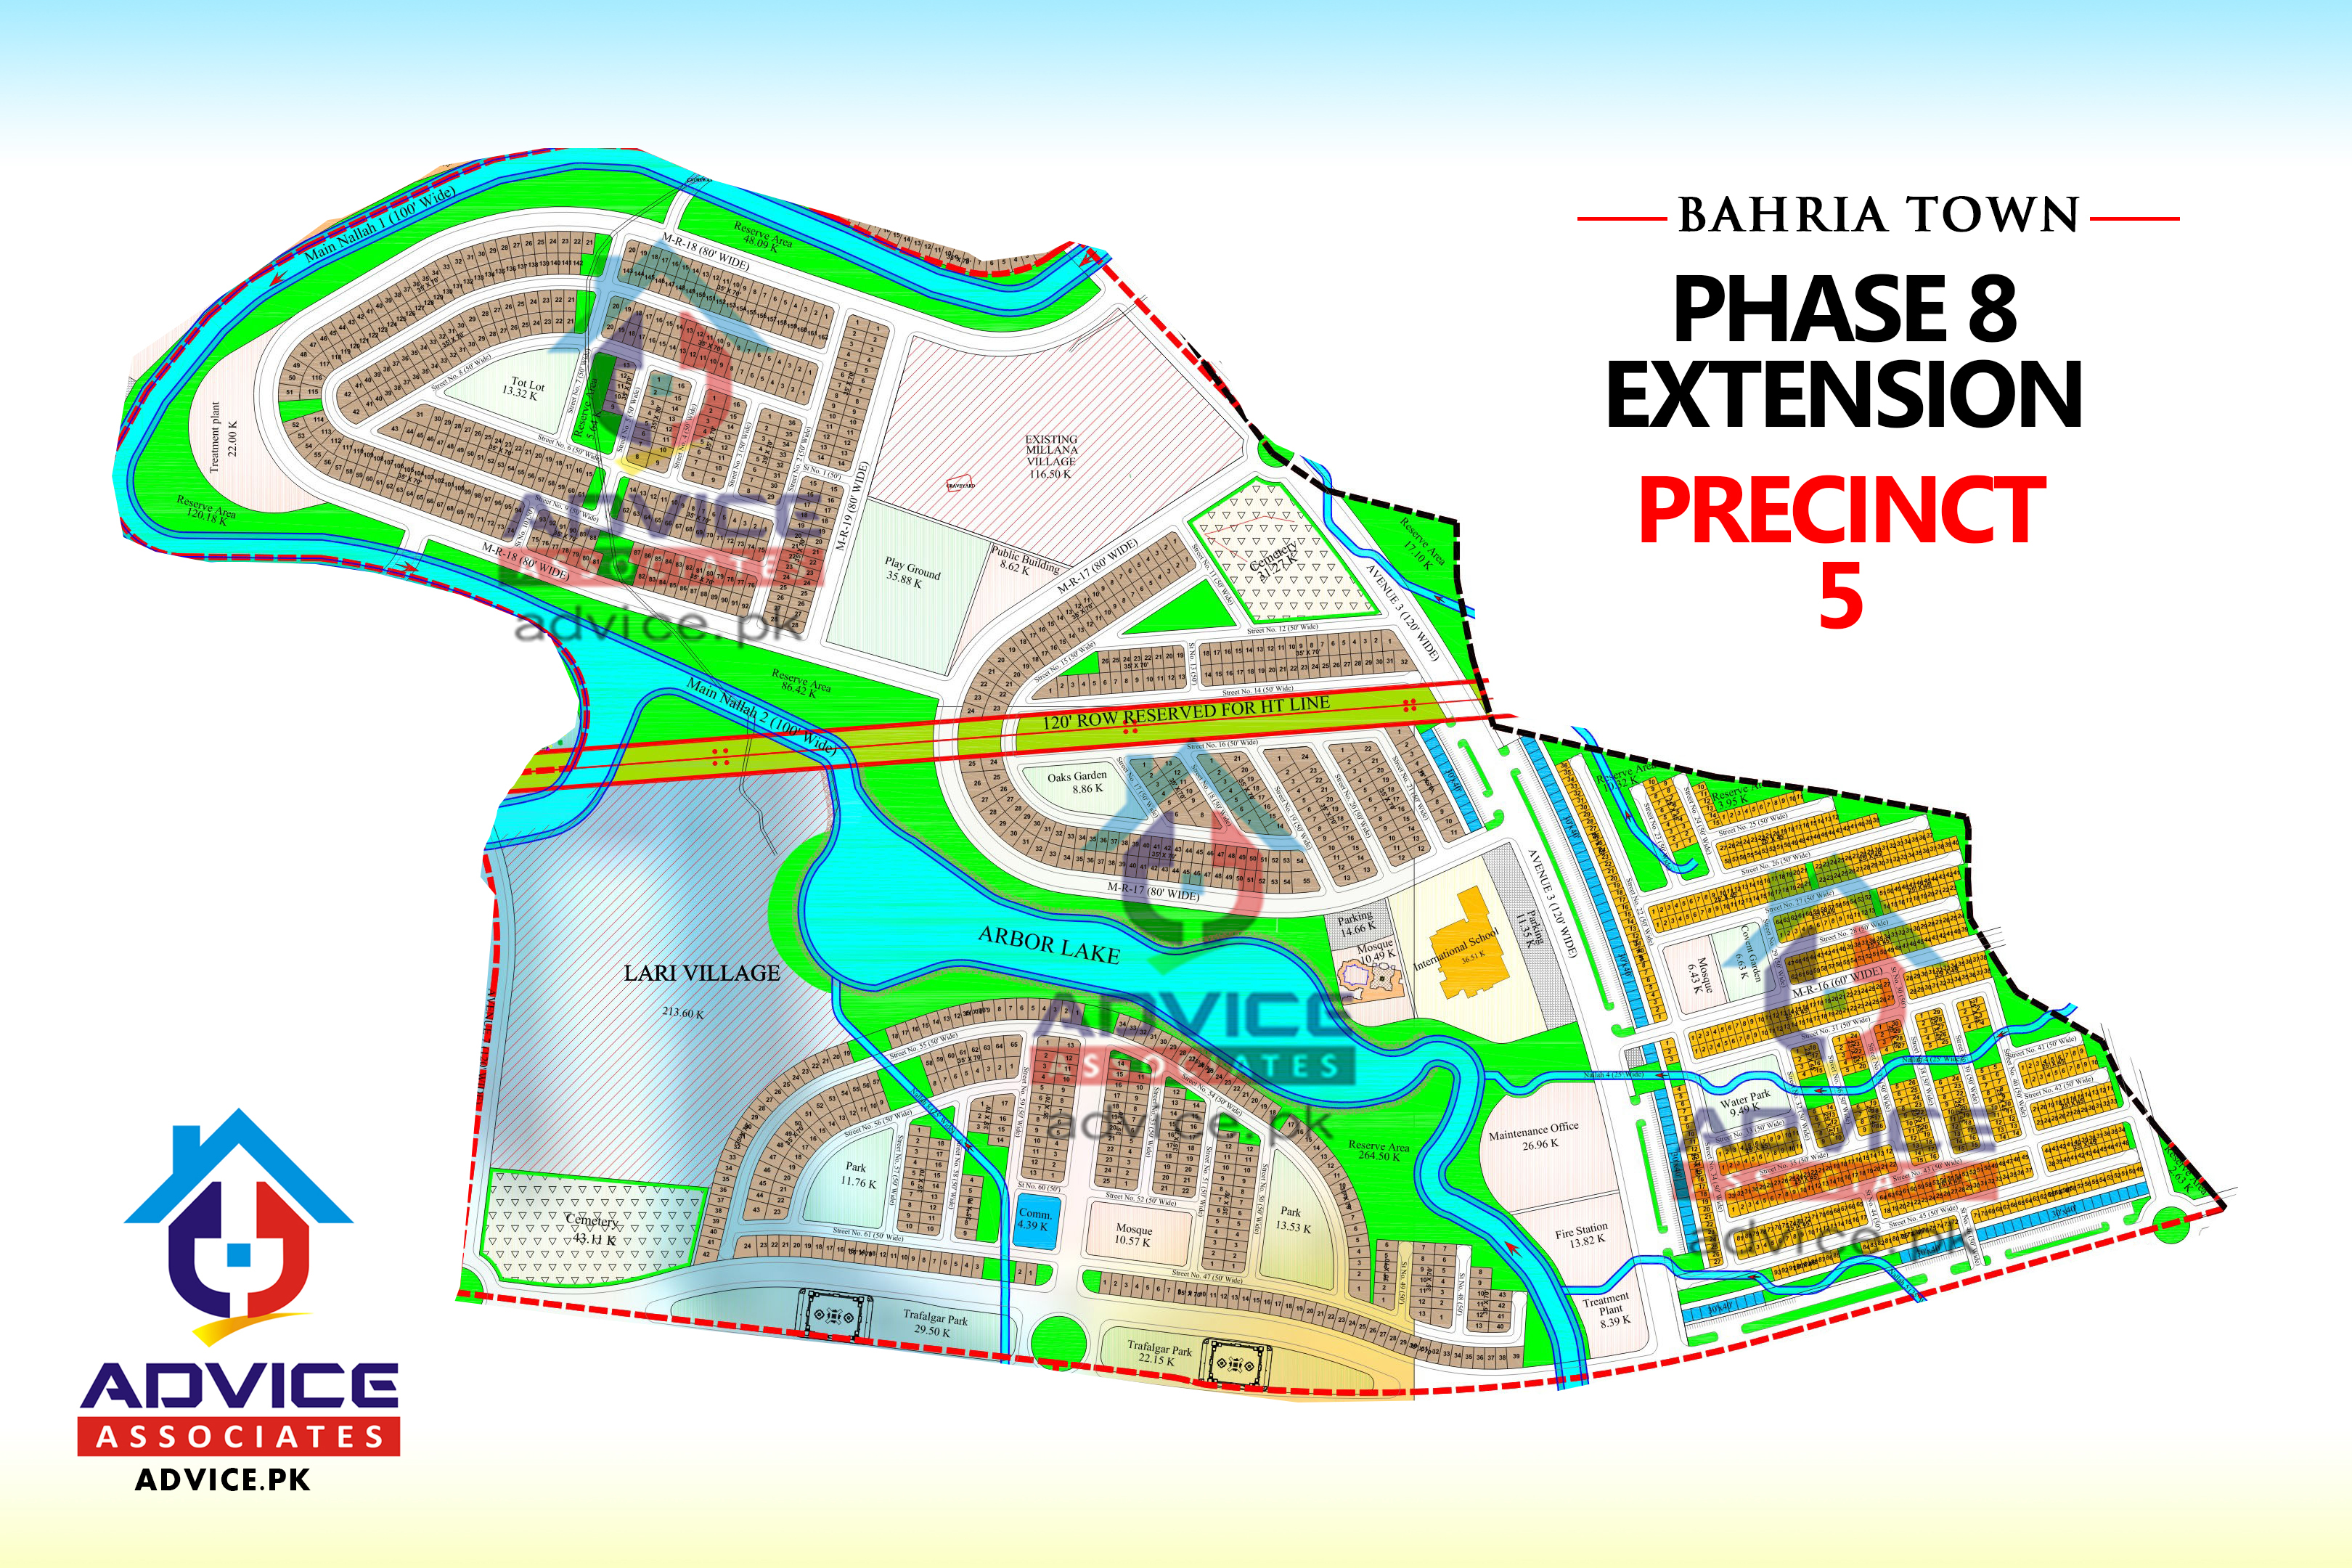 Bahria Town Phase 8 Ext Precinct 5 Map